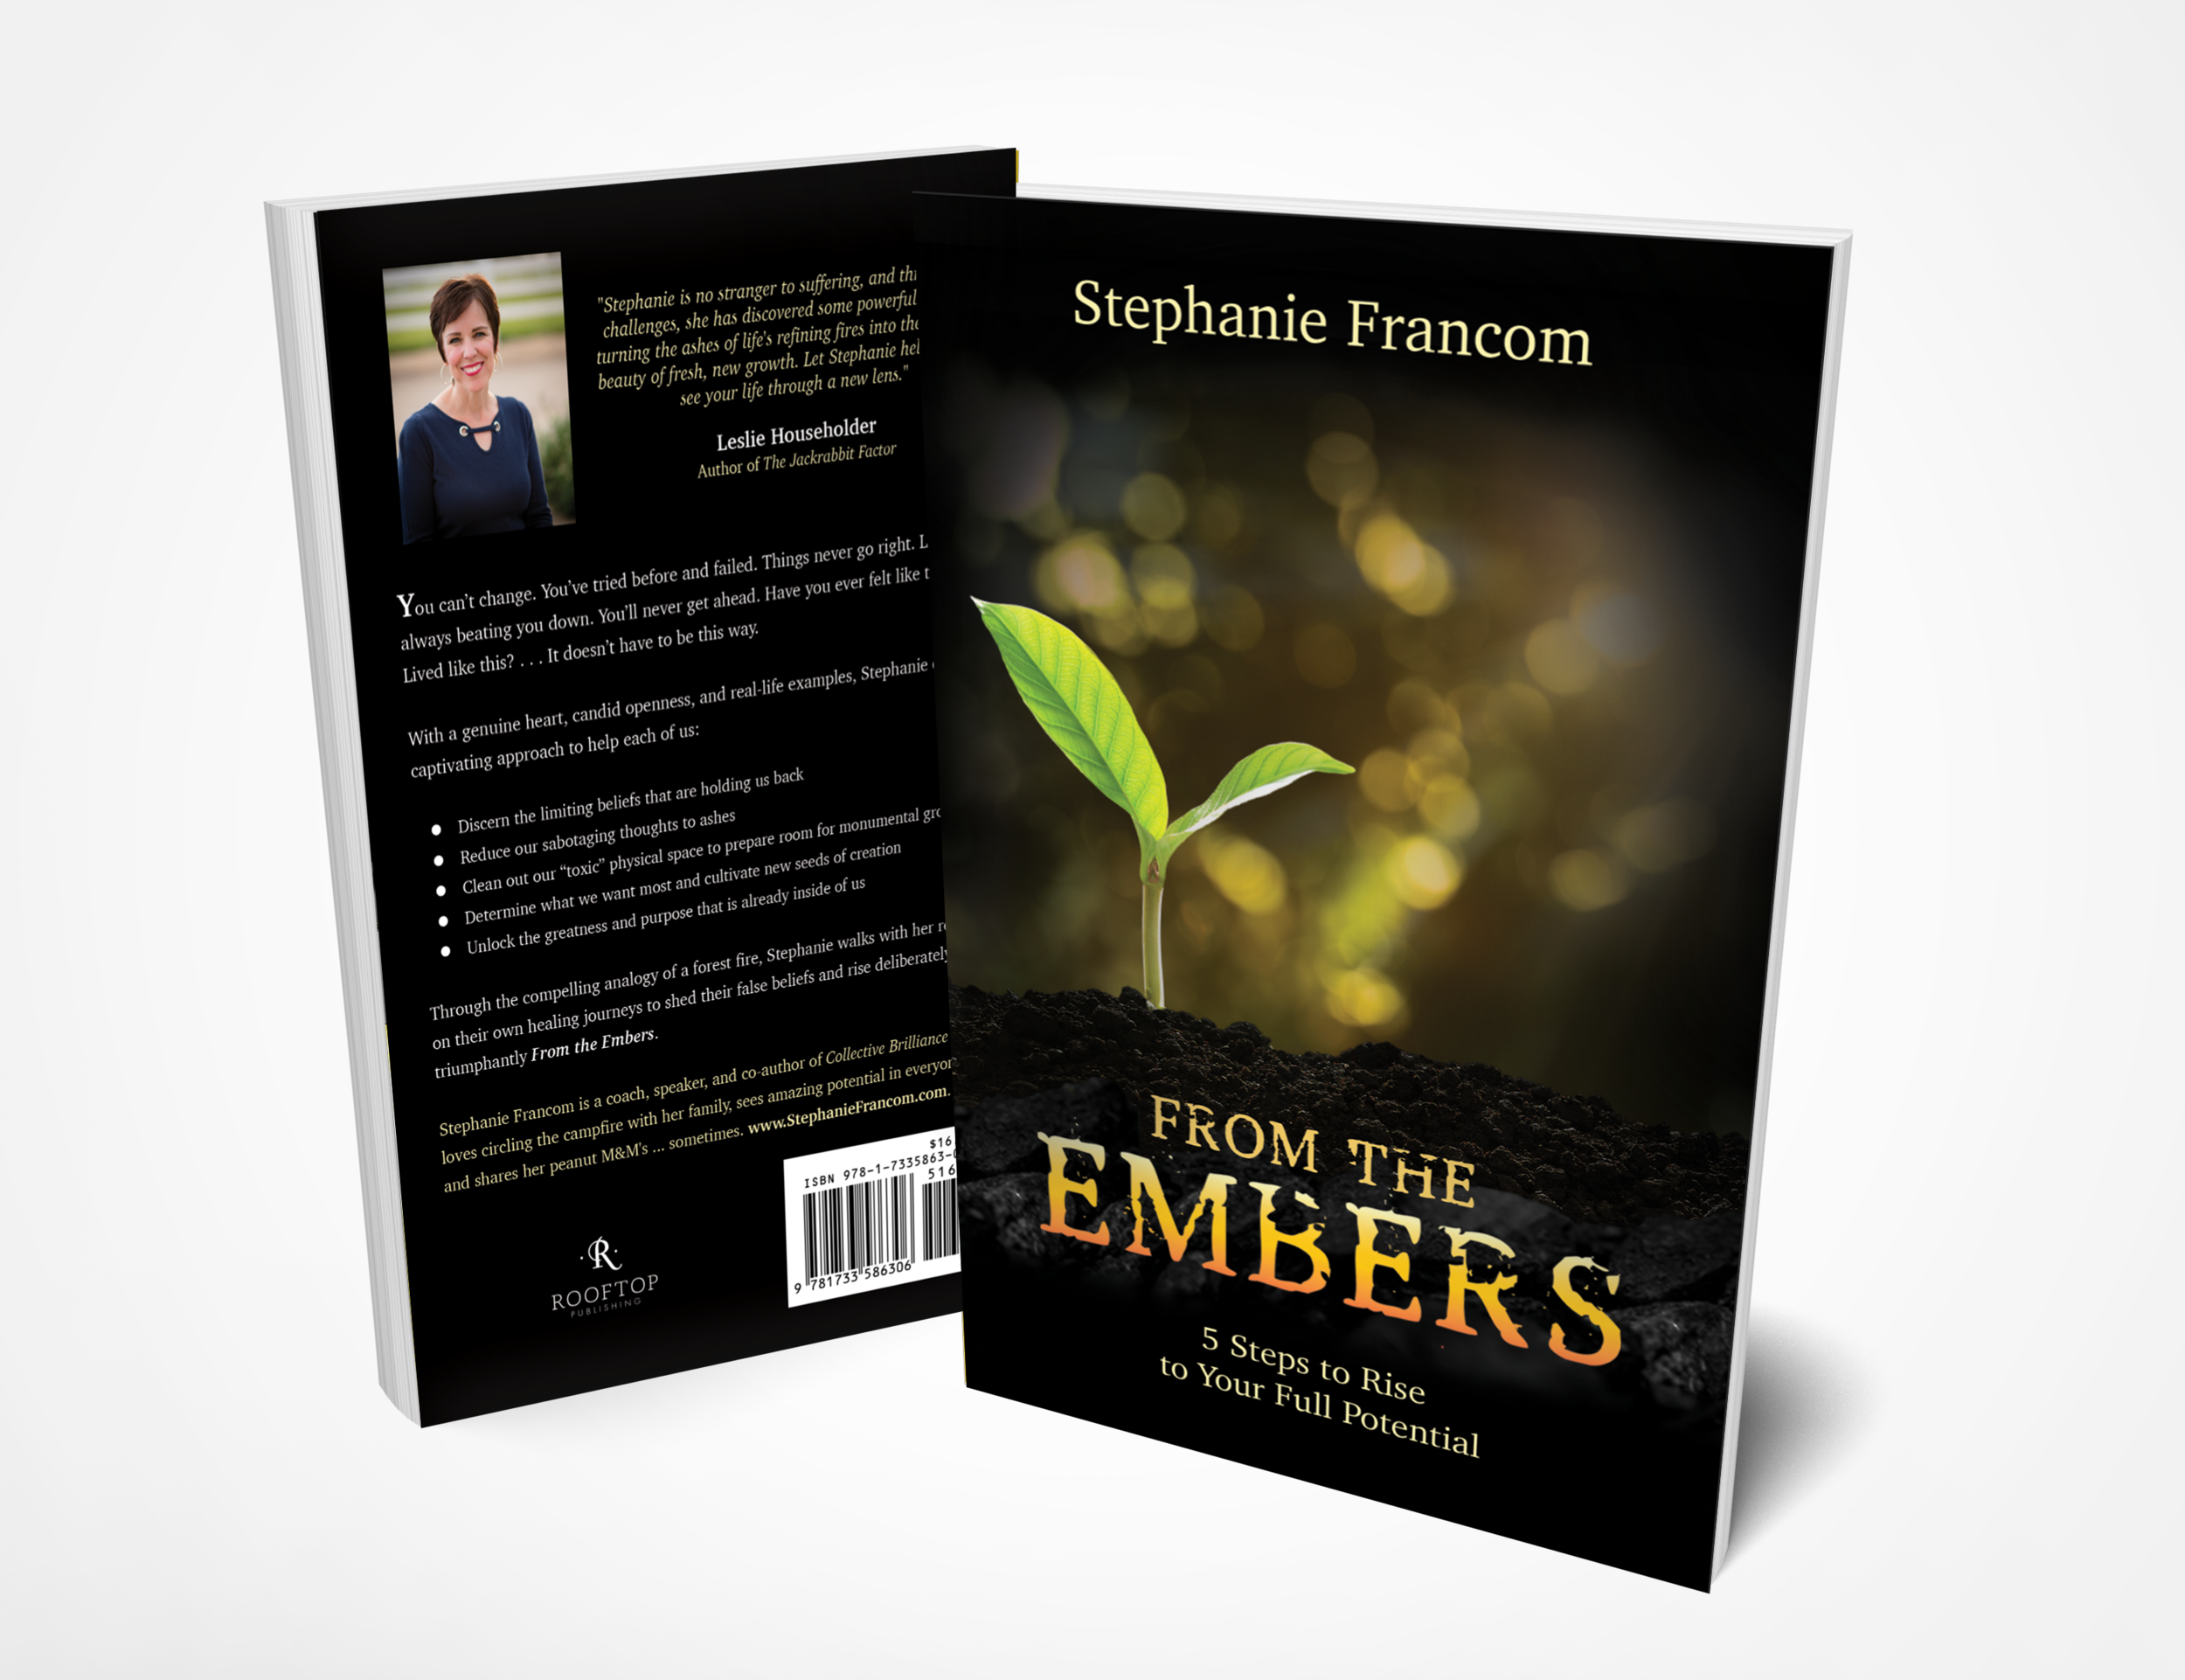 From the Embers: 5 Steps to Rise to Your Full Potential $14.95 Click to purchase on Amazon